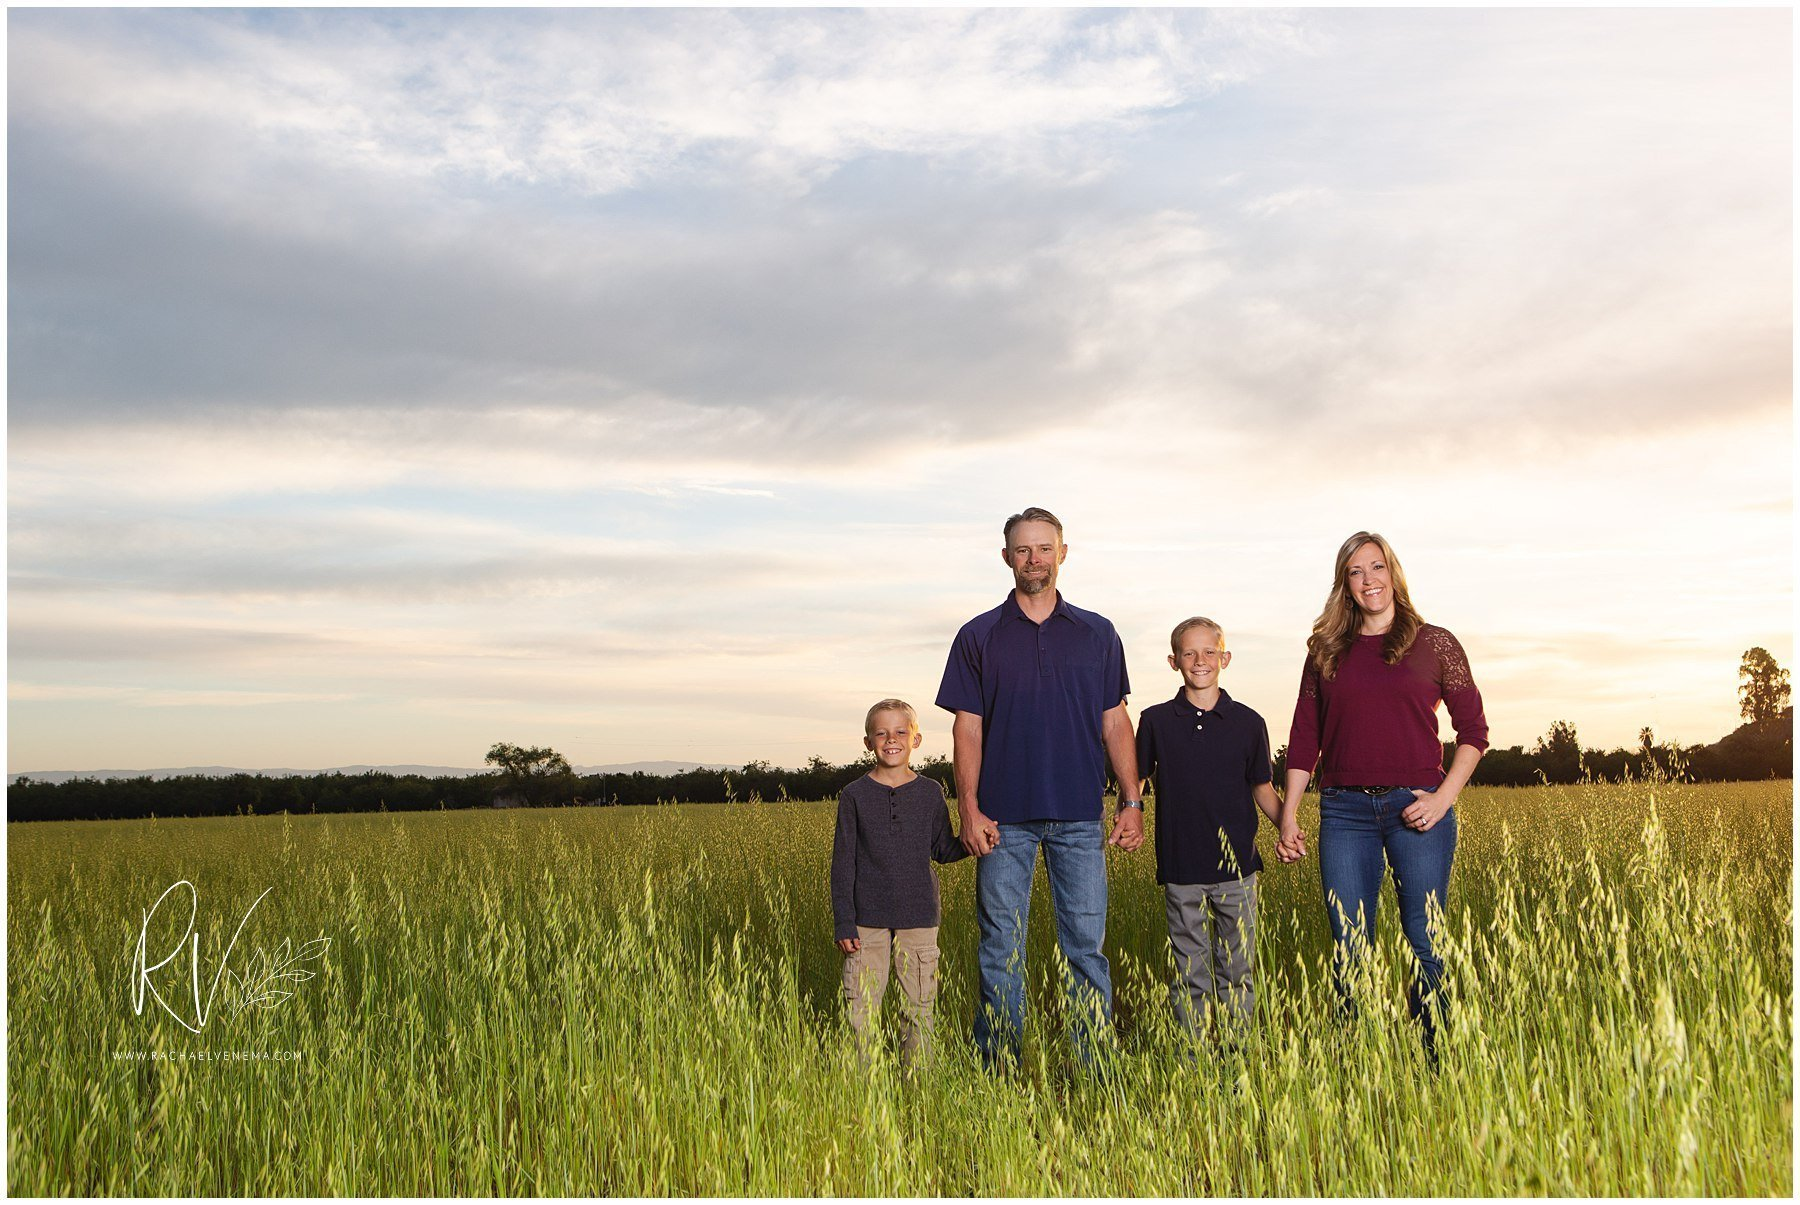 summer family photos, what to wear, family portraits, family pictures, photo style guide, ripon photographer, central valley family photographer, central valley portrait photographer, central valley photographer, northern california photographer